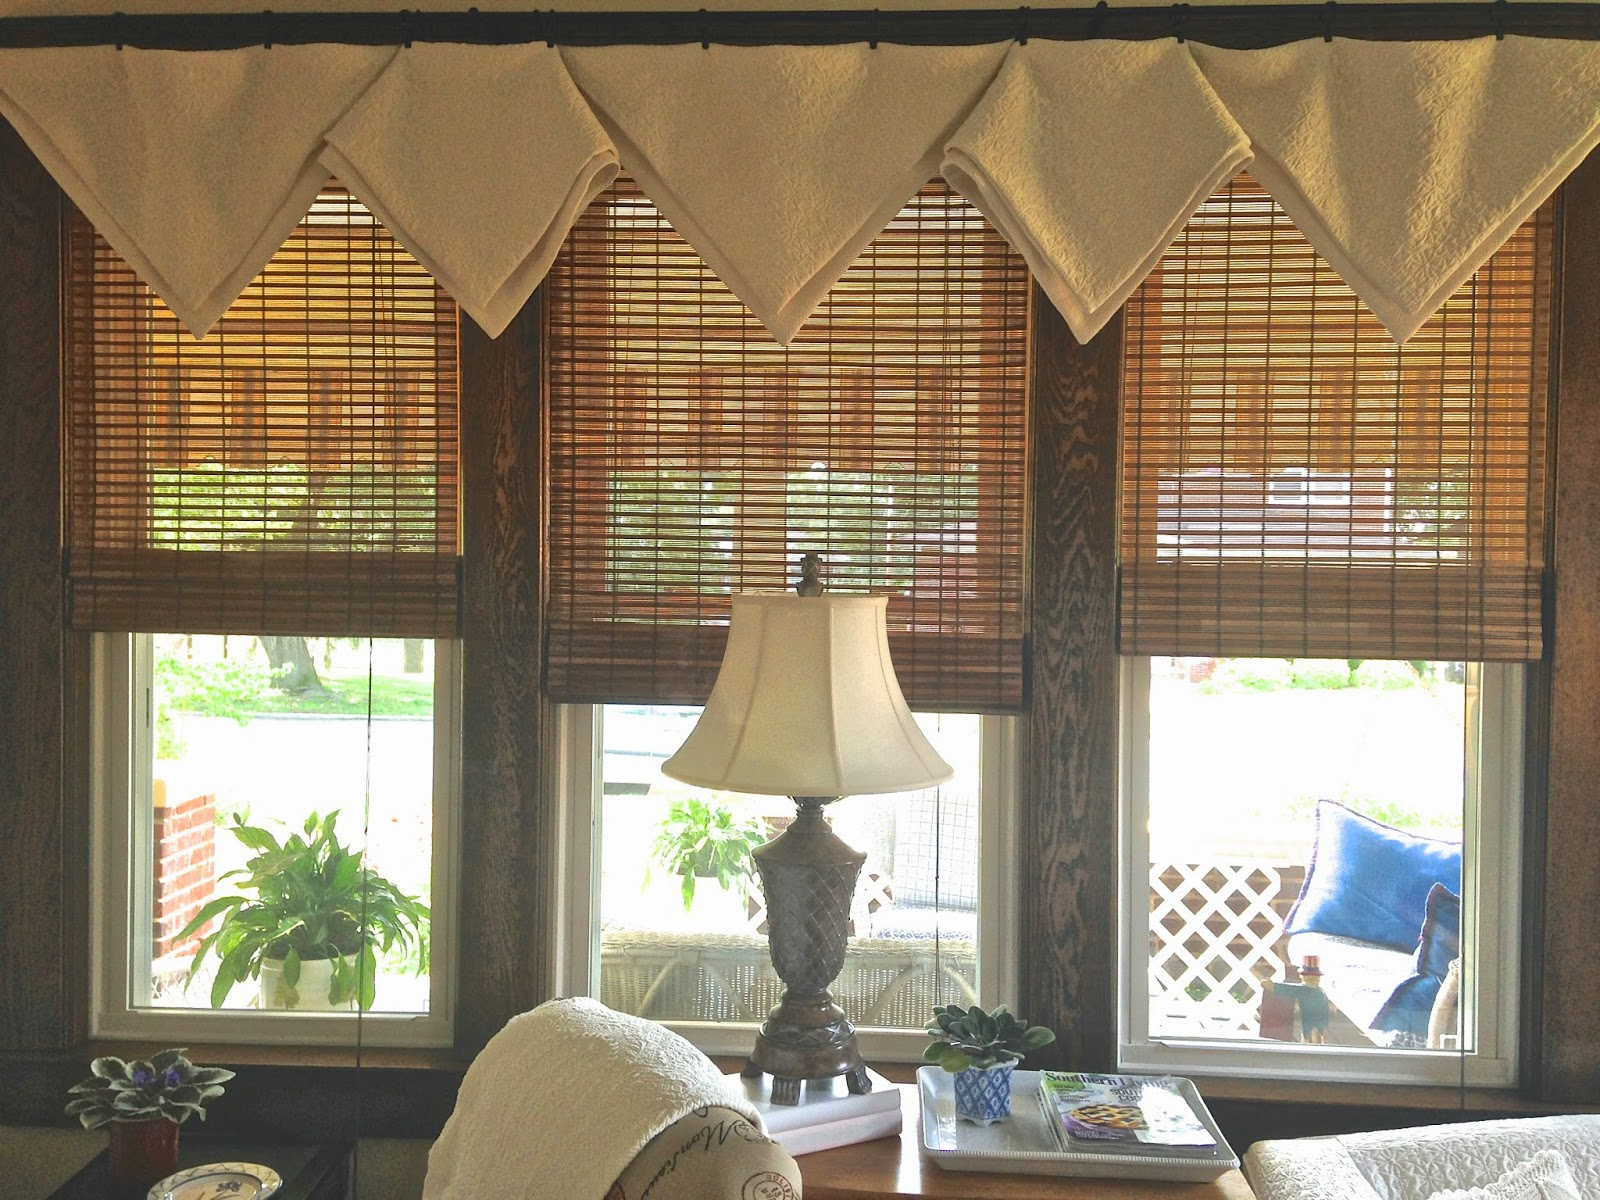 Days at buttermilk cottage simple new window treatment Simple window treatments